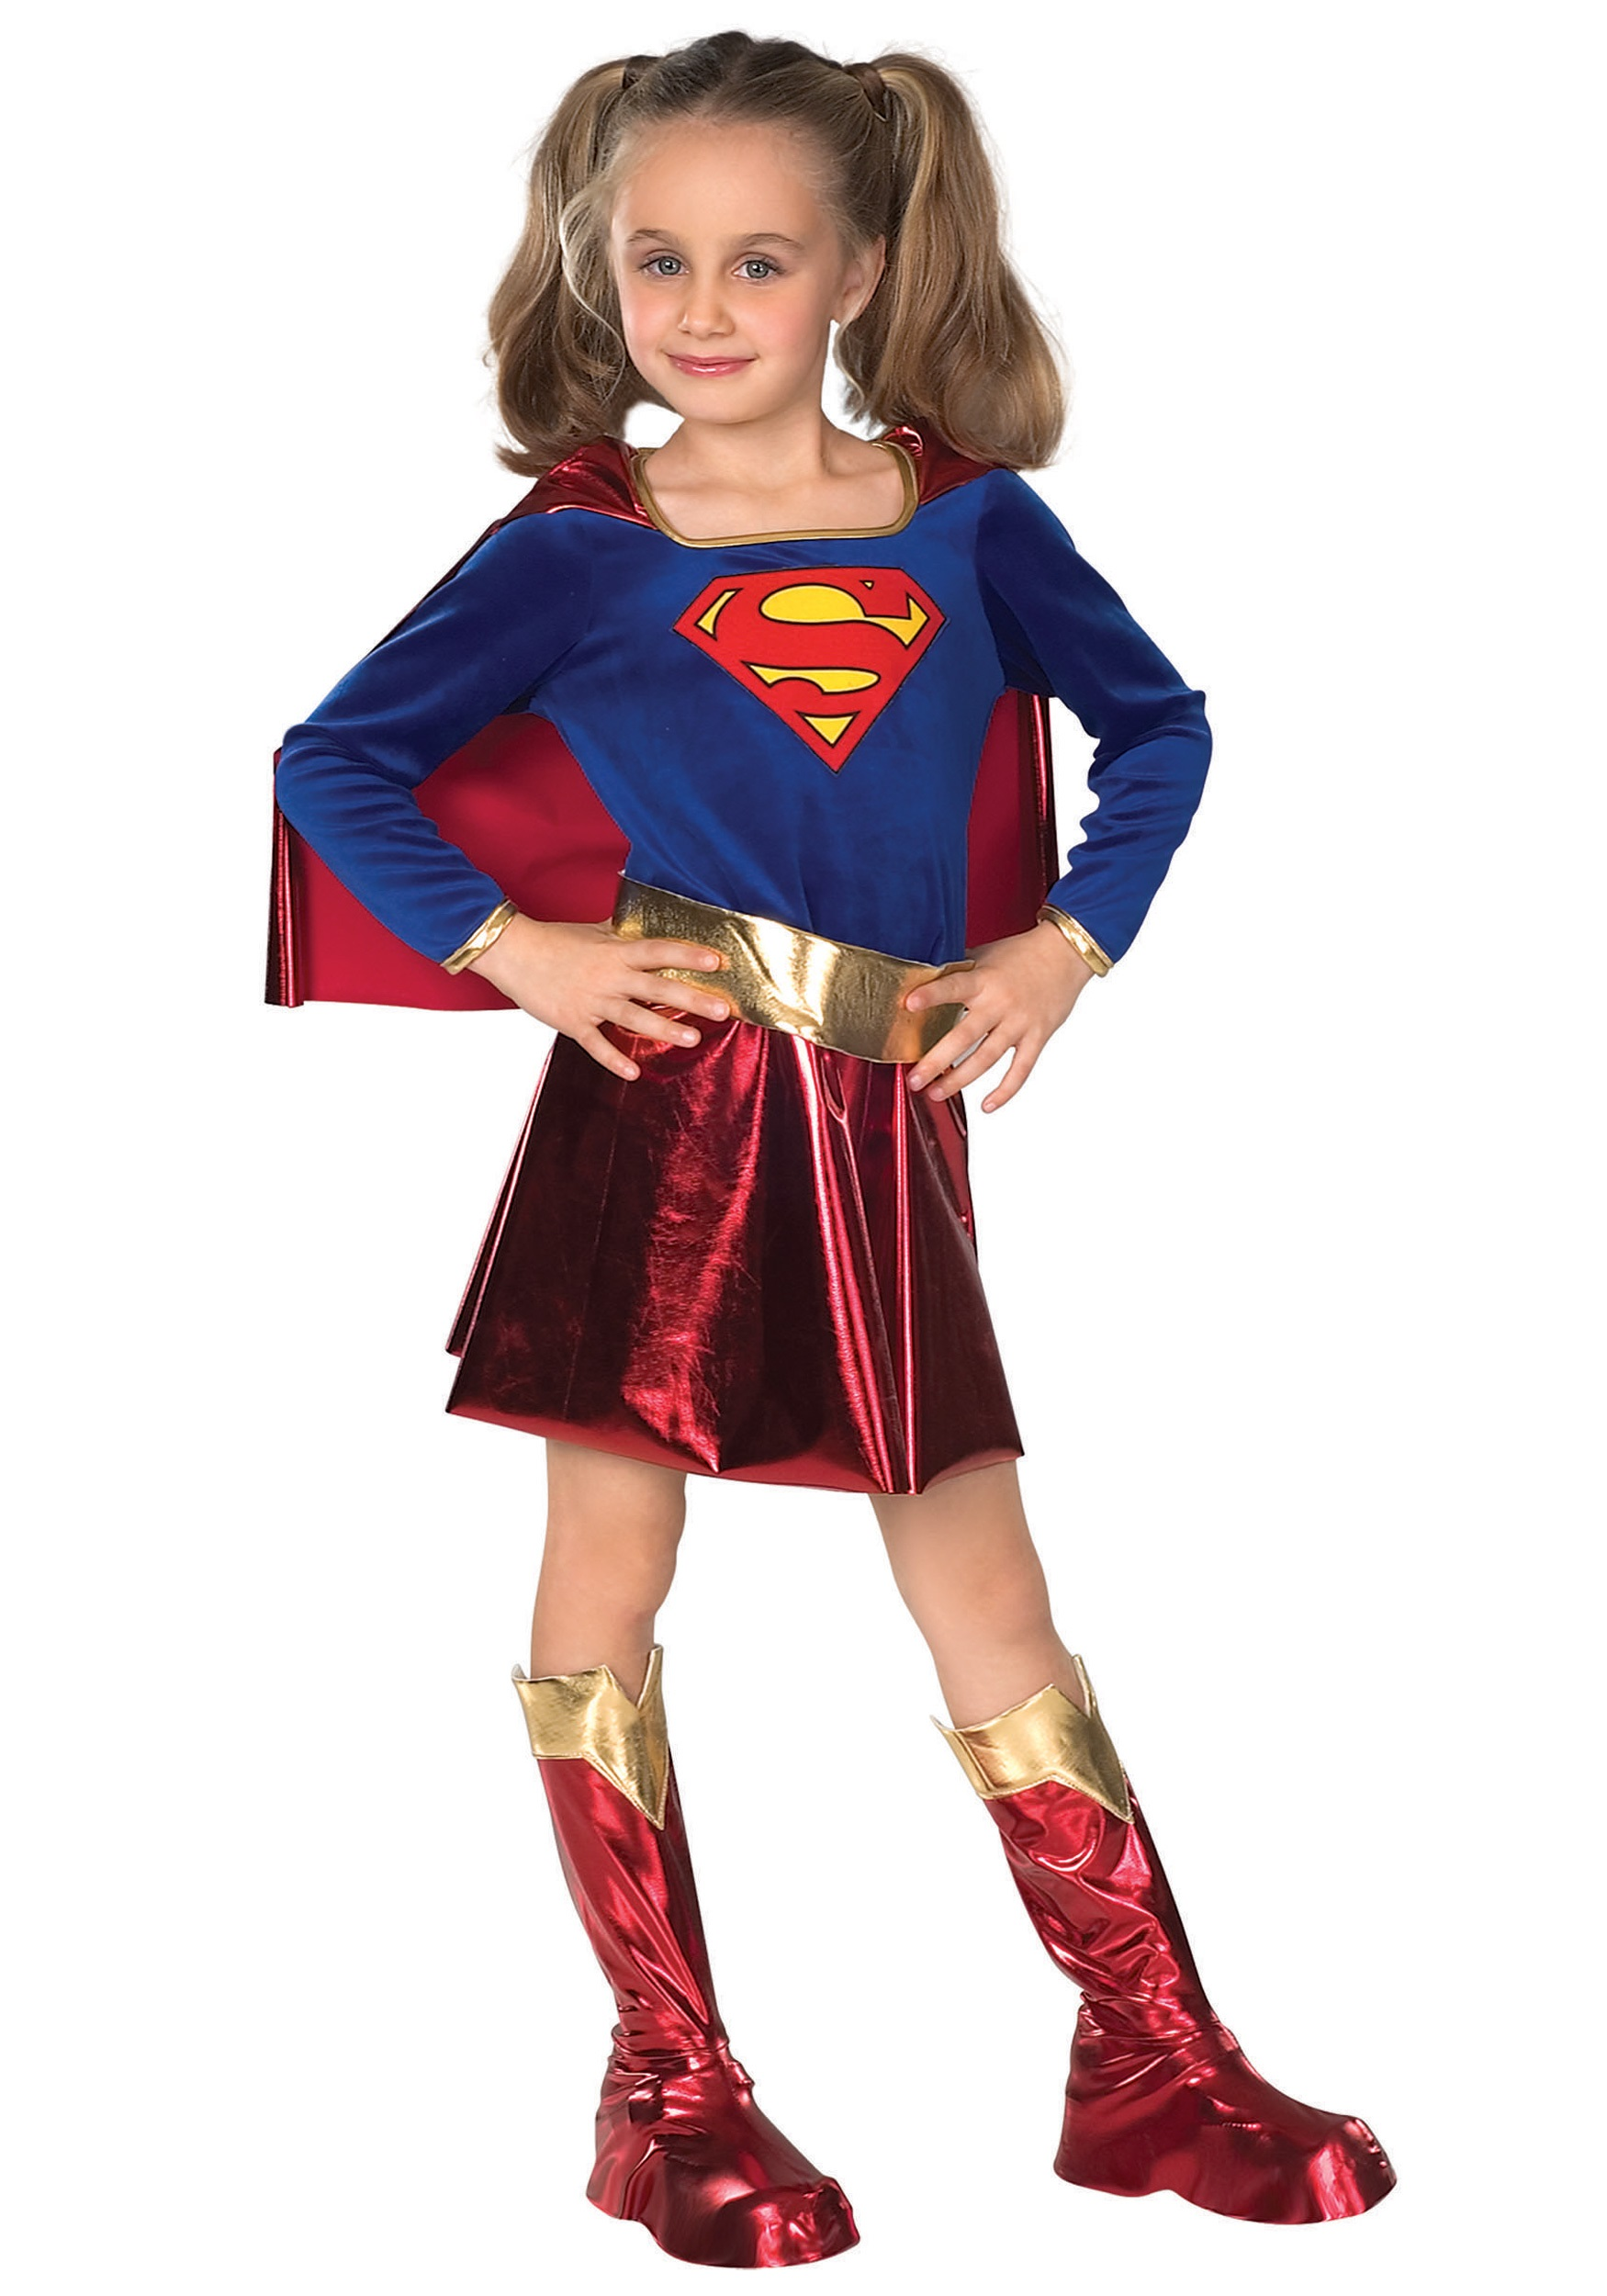 Kids Supergirl Costume  sc 1 st  Halloween Costume & Kids Supergirl Costume - Child Super Girl Superhero Halloween Costumes